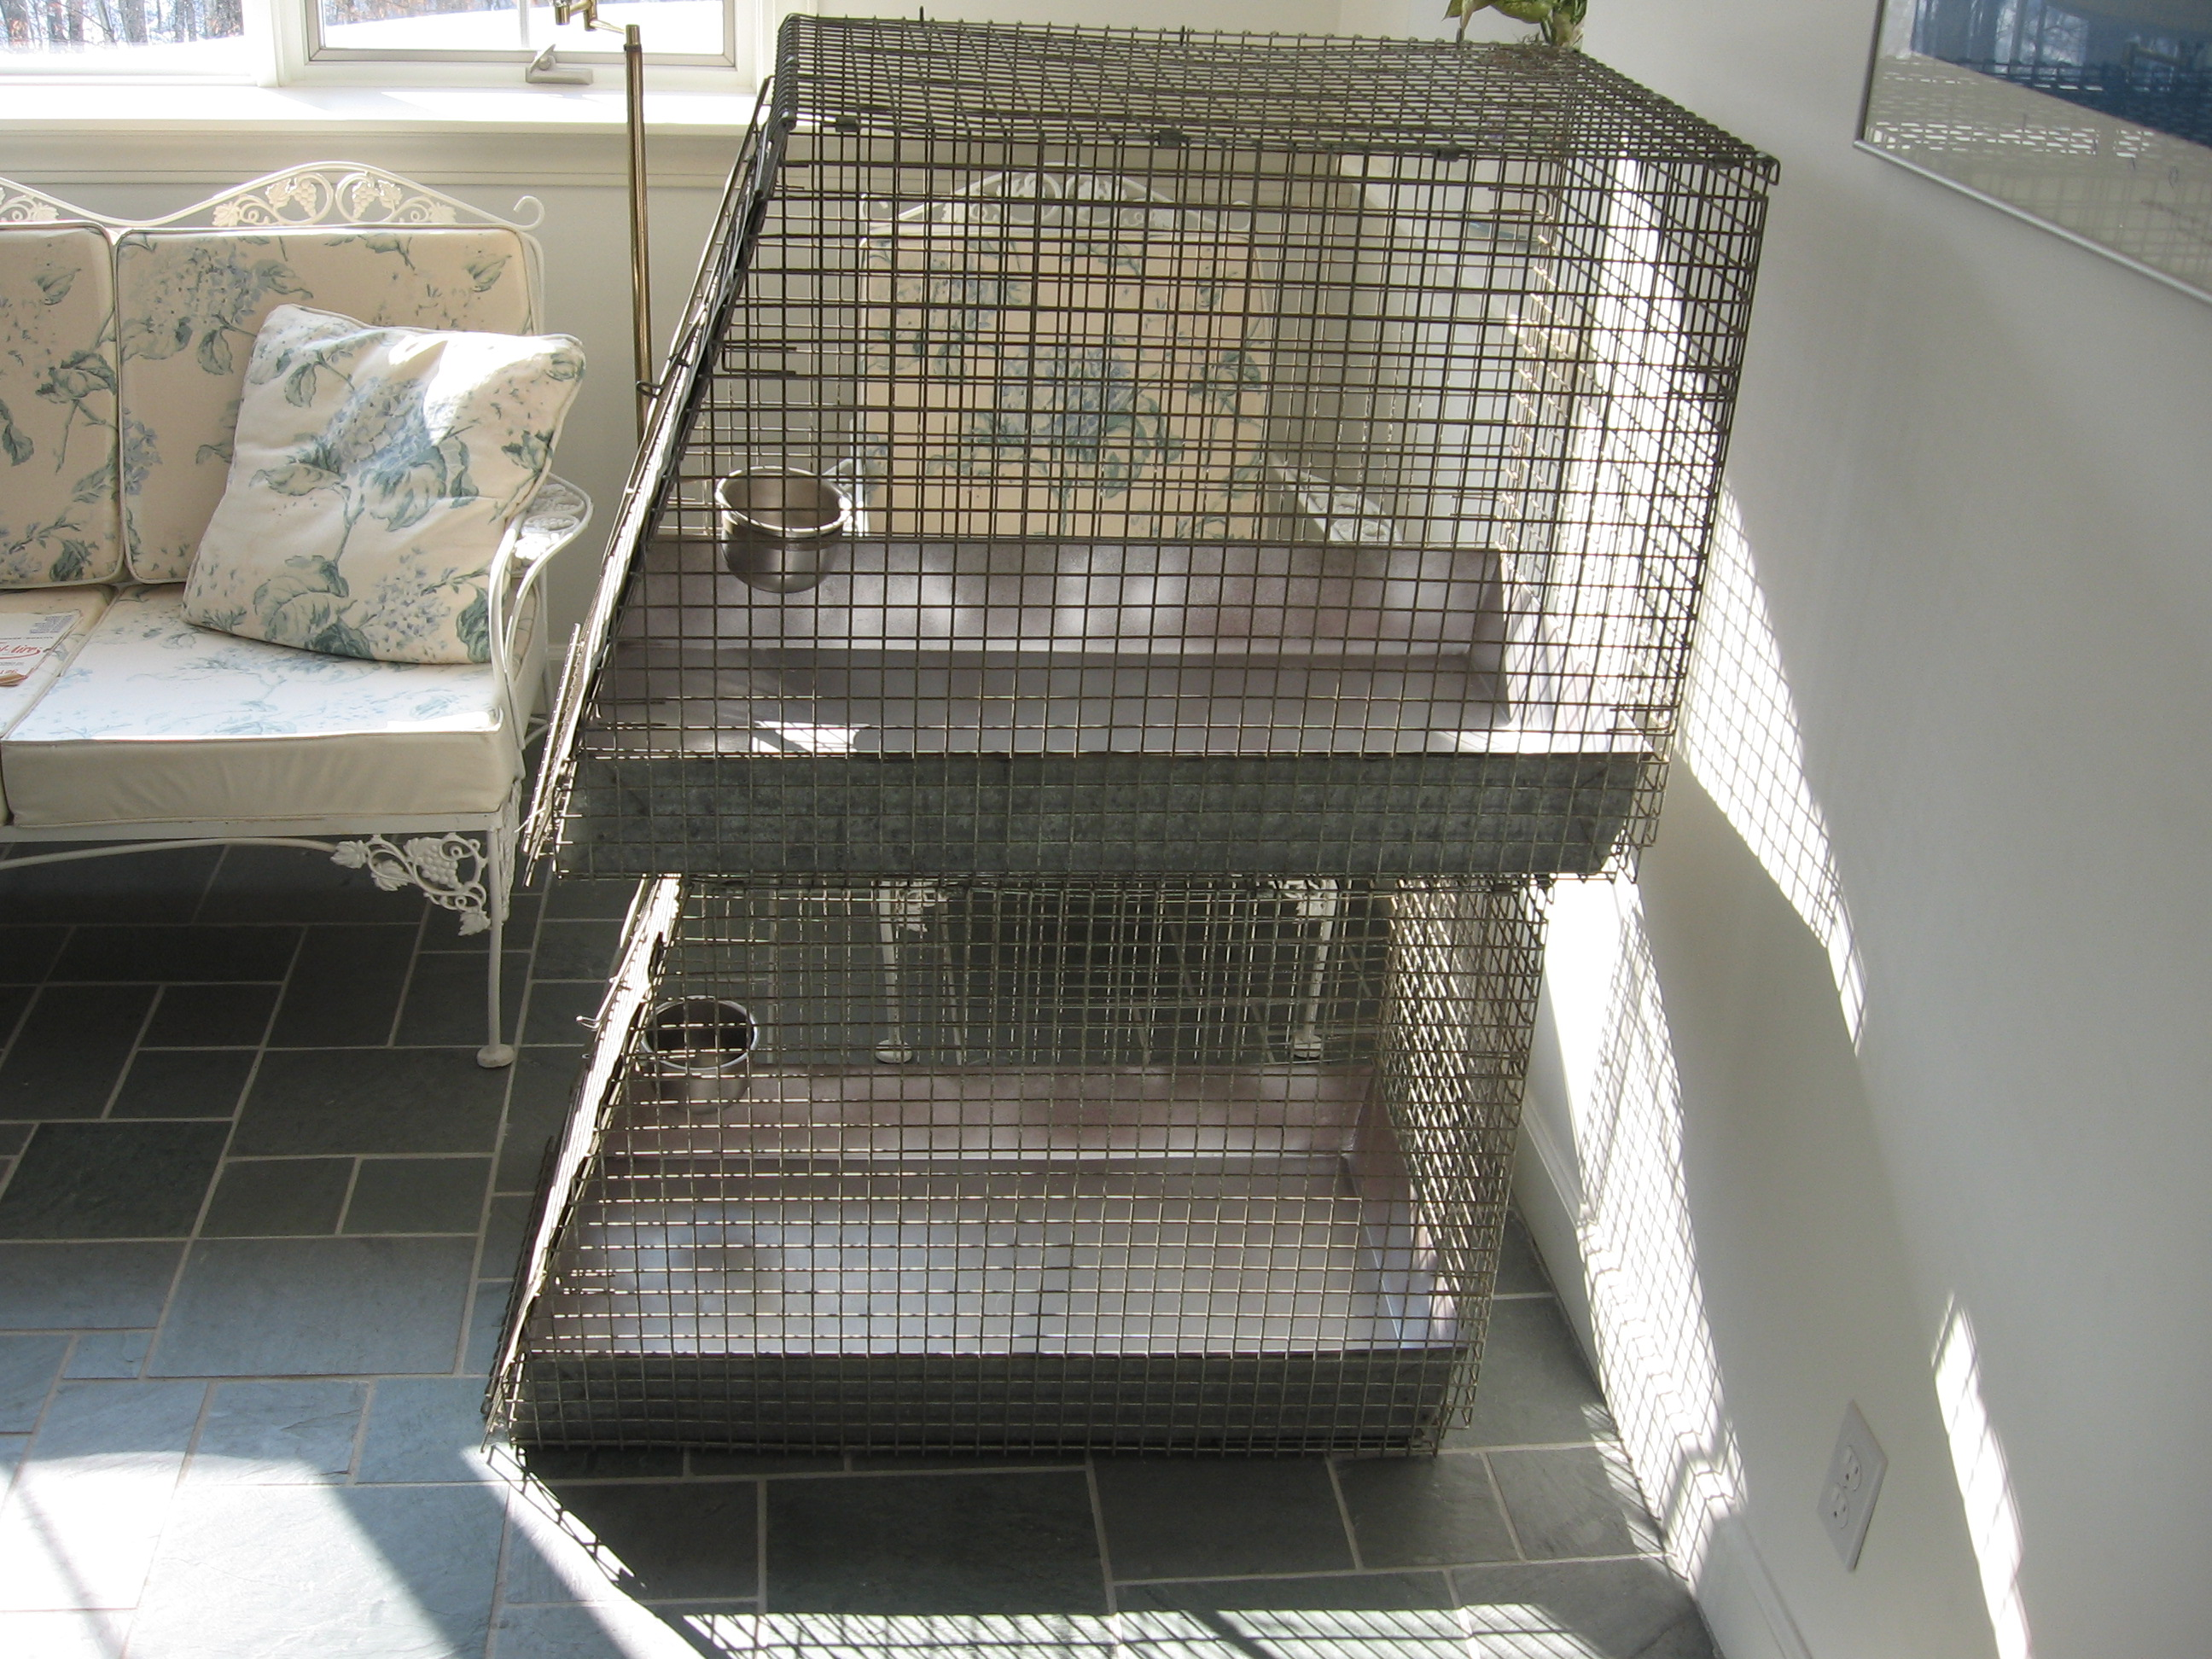 Kennel-Aire Dog Crates 006.JPG